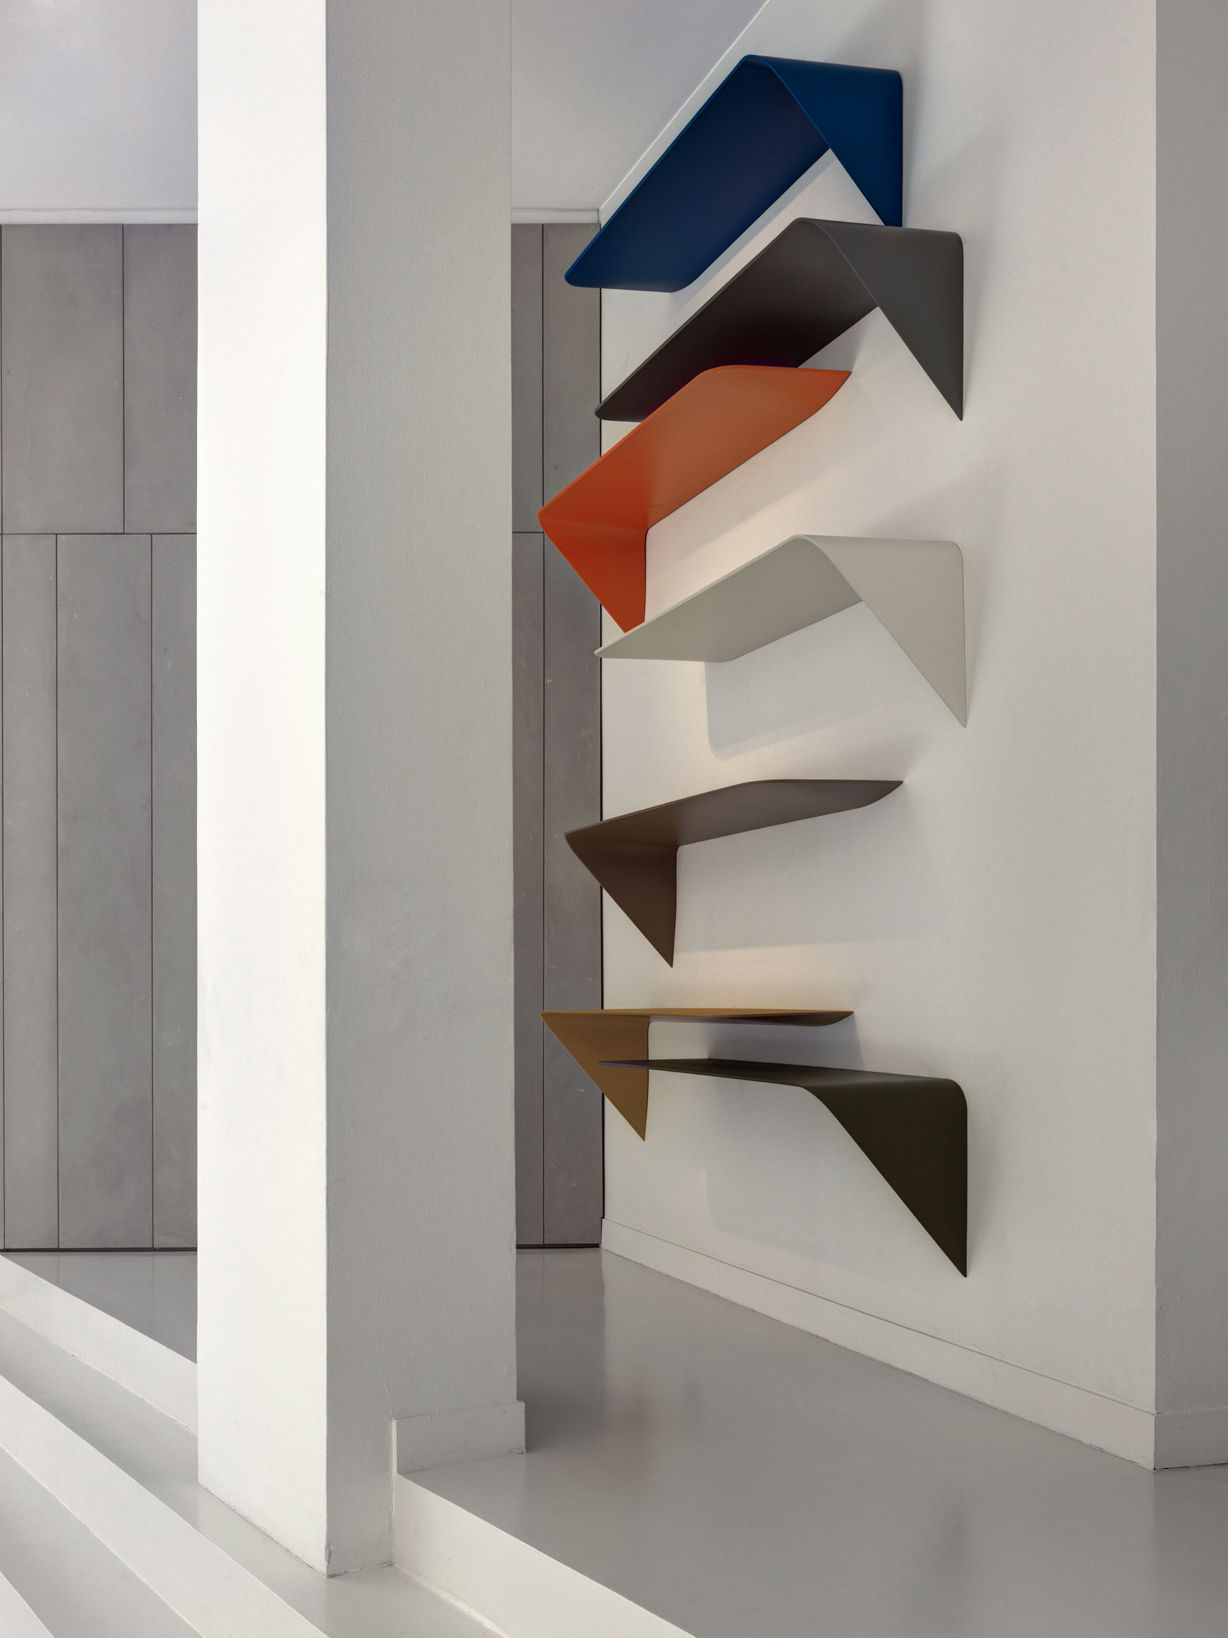 Home > Furniture > Shelves & bookcases > Mamba light Shelf by MDF